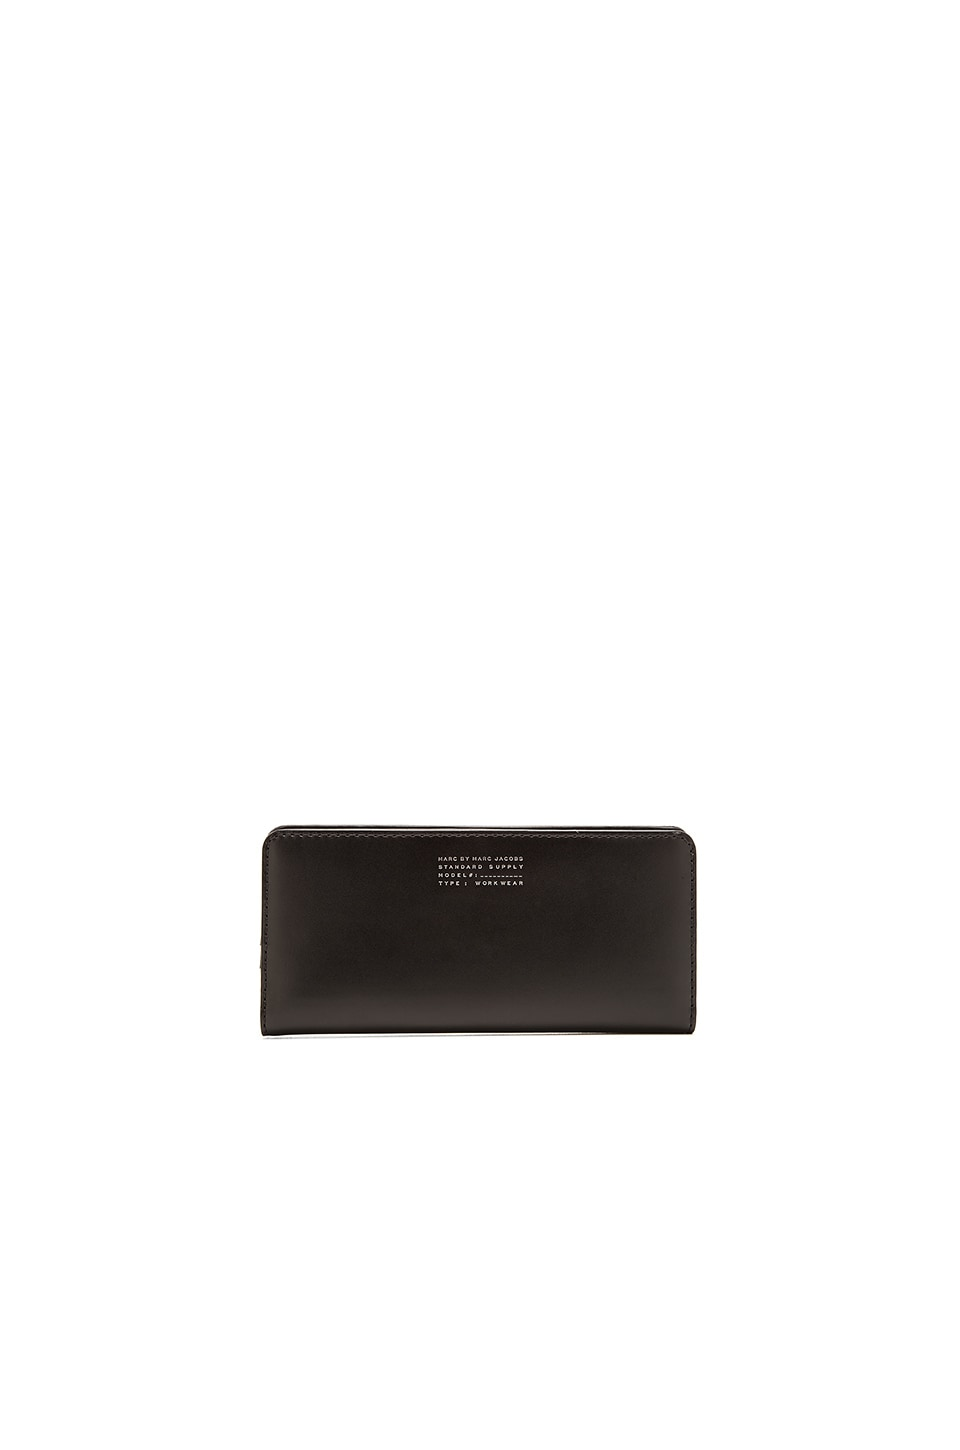 Marc by Marc Jacobs Sophisticato Pop Tomoko Wallet in Black